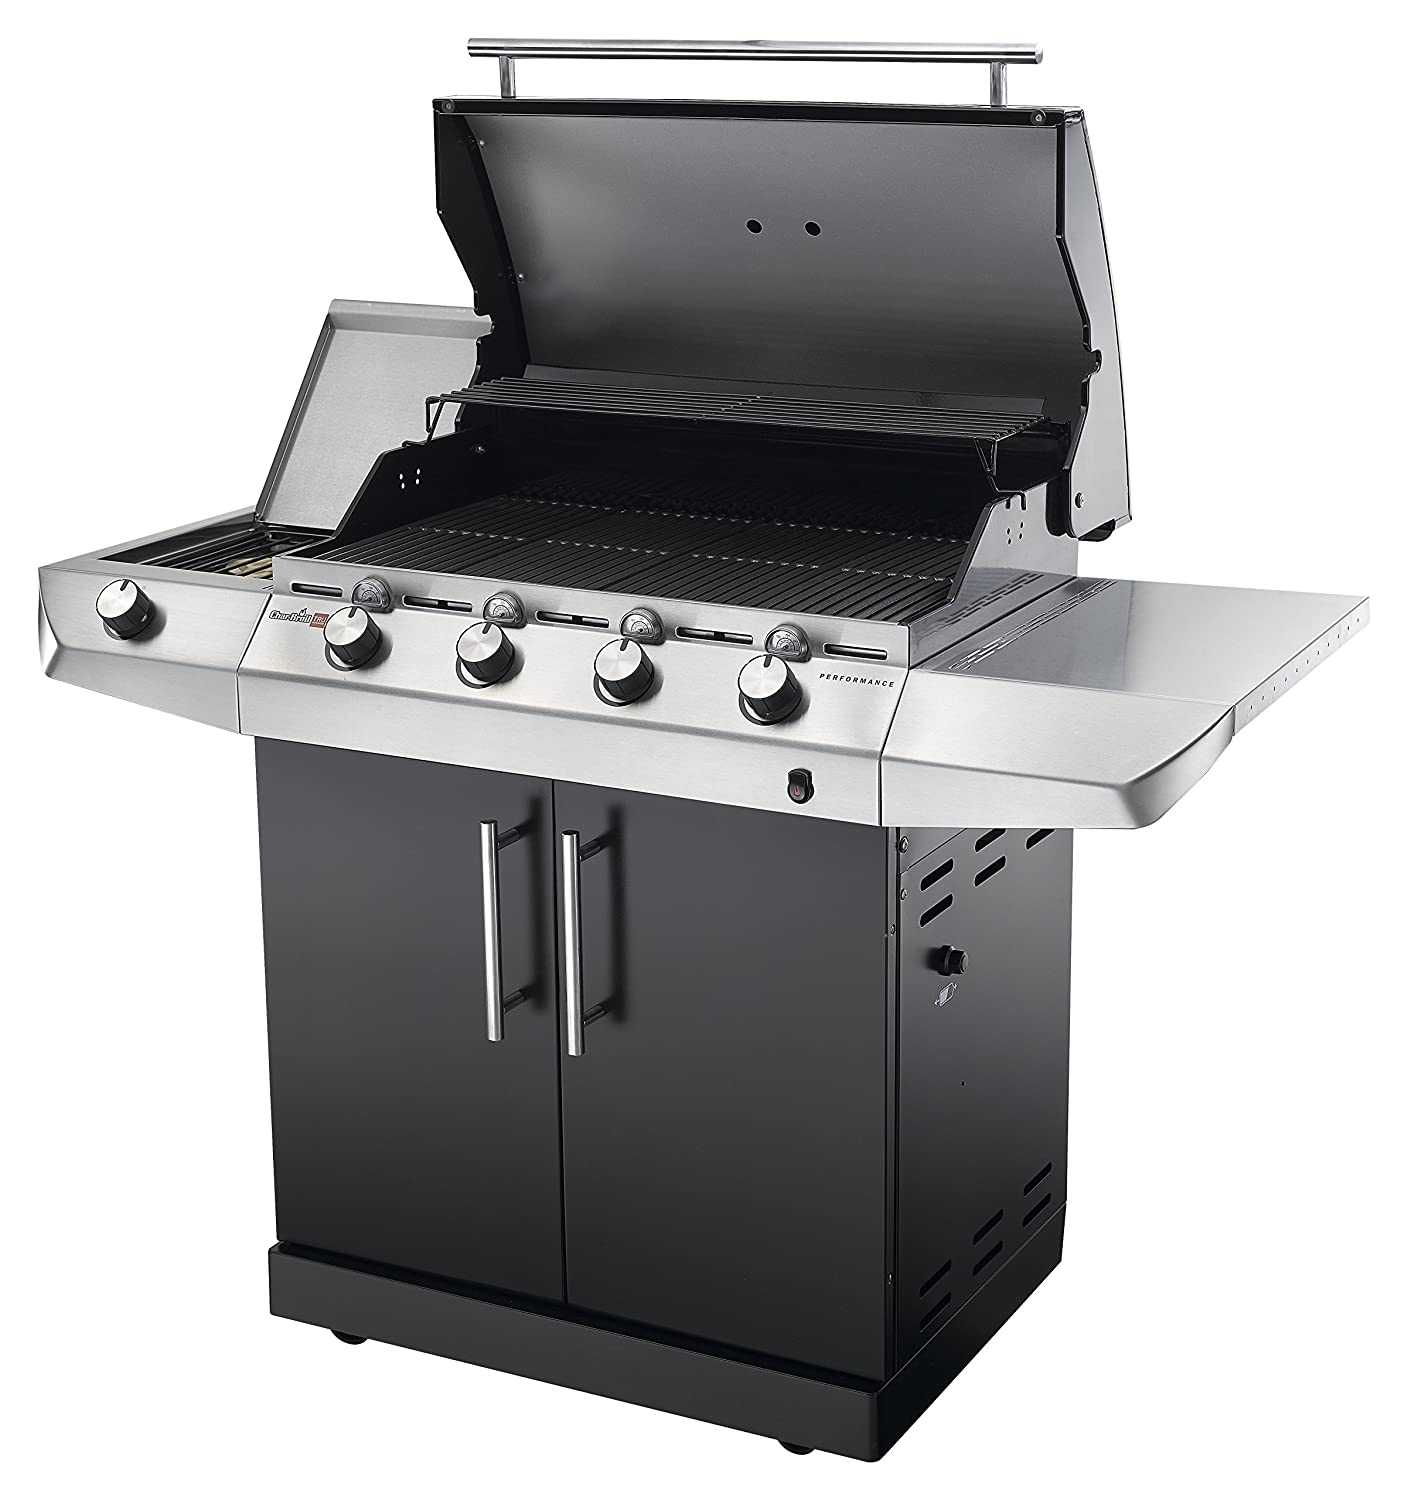 Nye Char-Broil Performance Series T47G - 4 Brenner Gasgrill mit RY-06